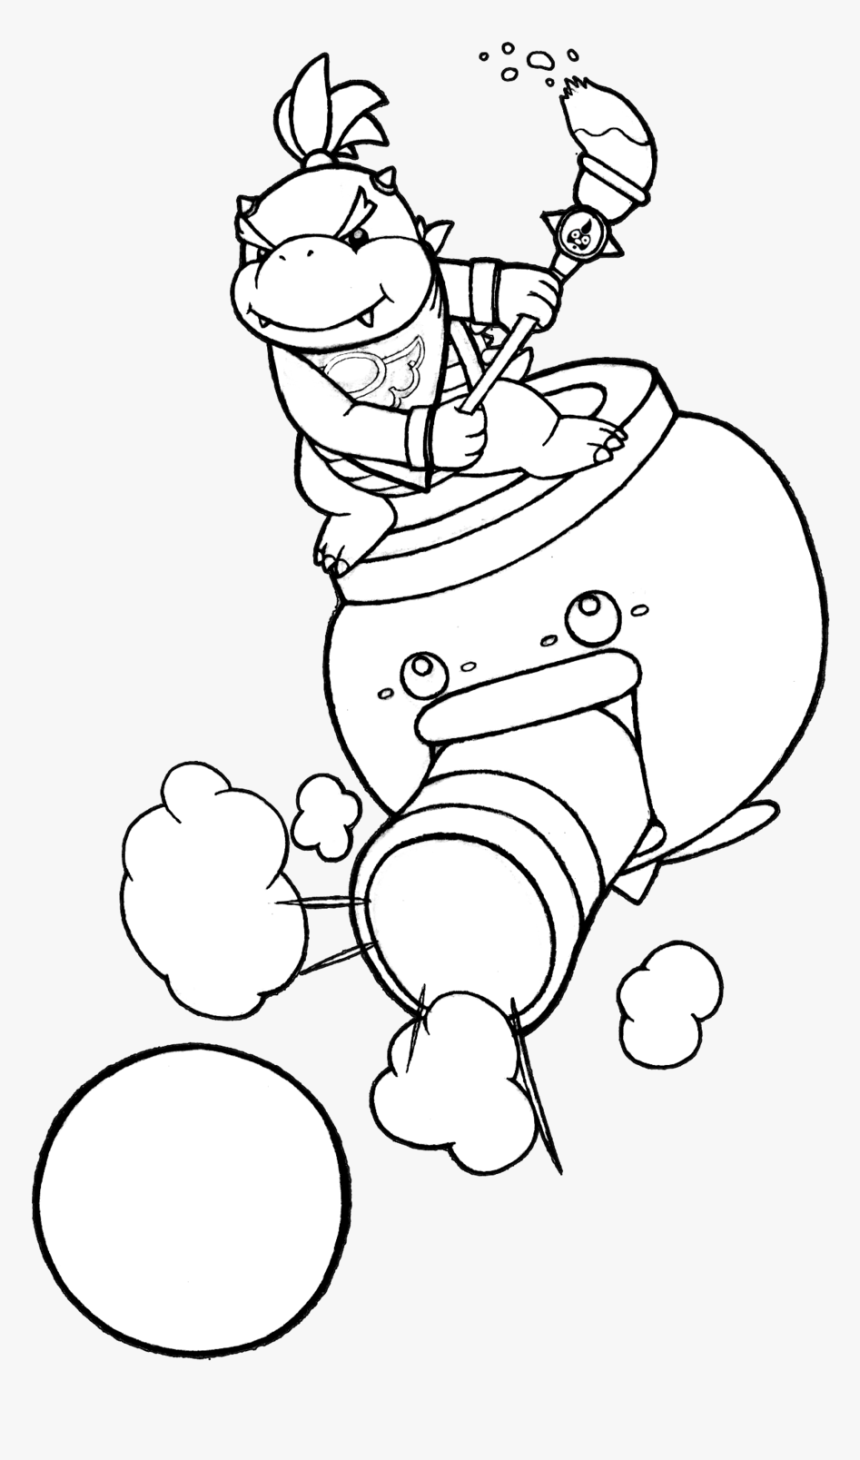 Coloring Pages For Kids And For Adults - Mario Bowser Jr Coloring Pages, HD Png Download, Free Download